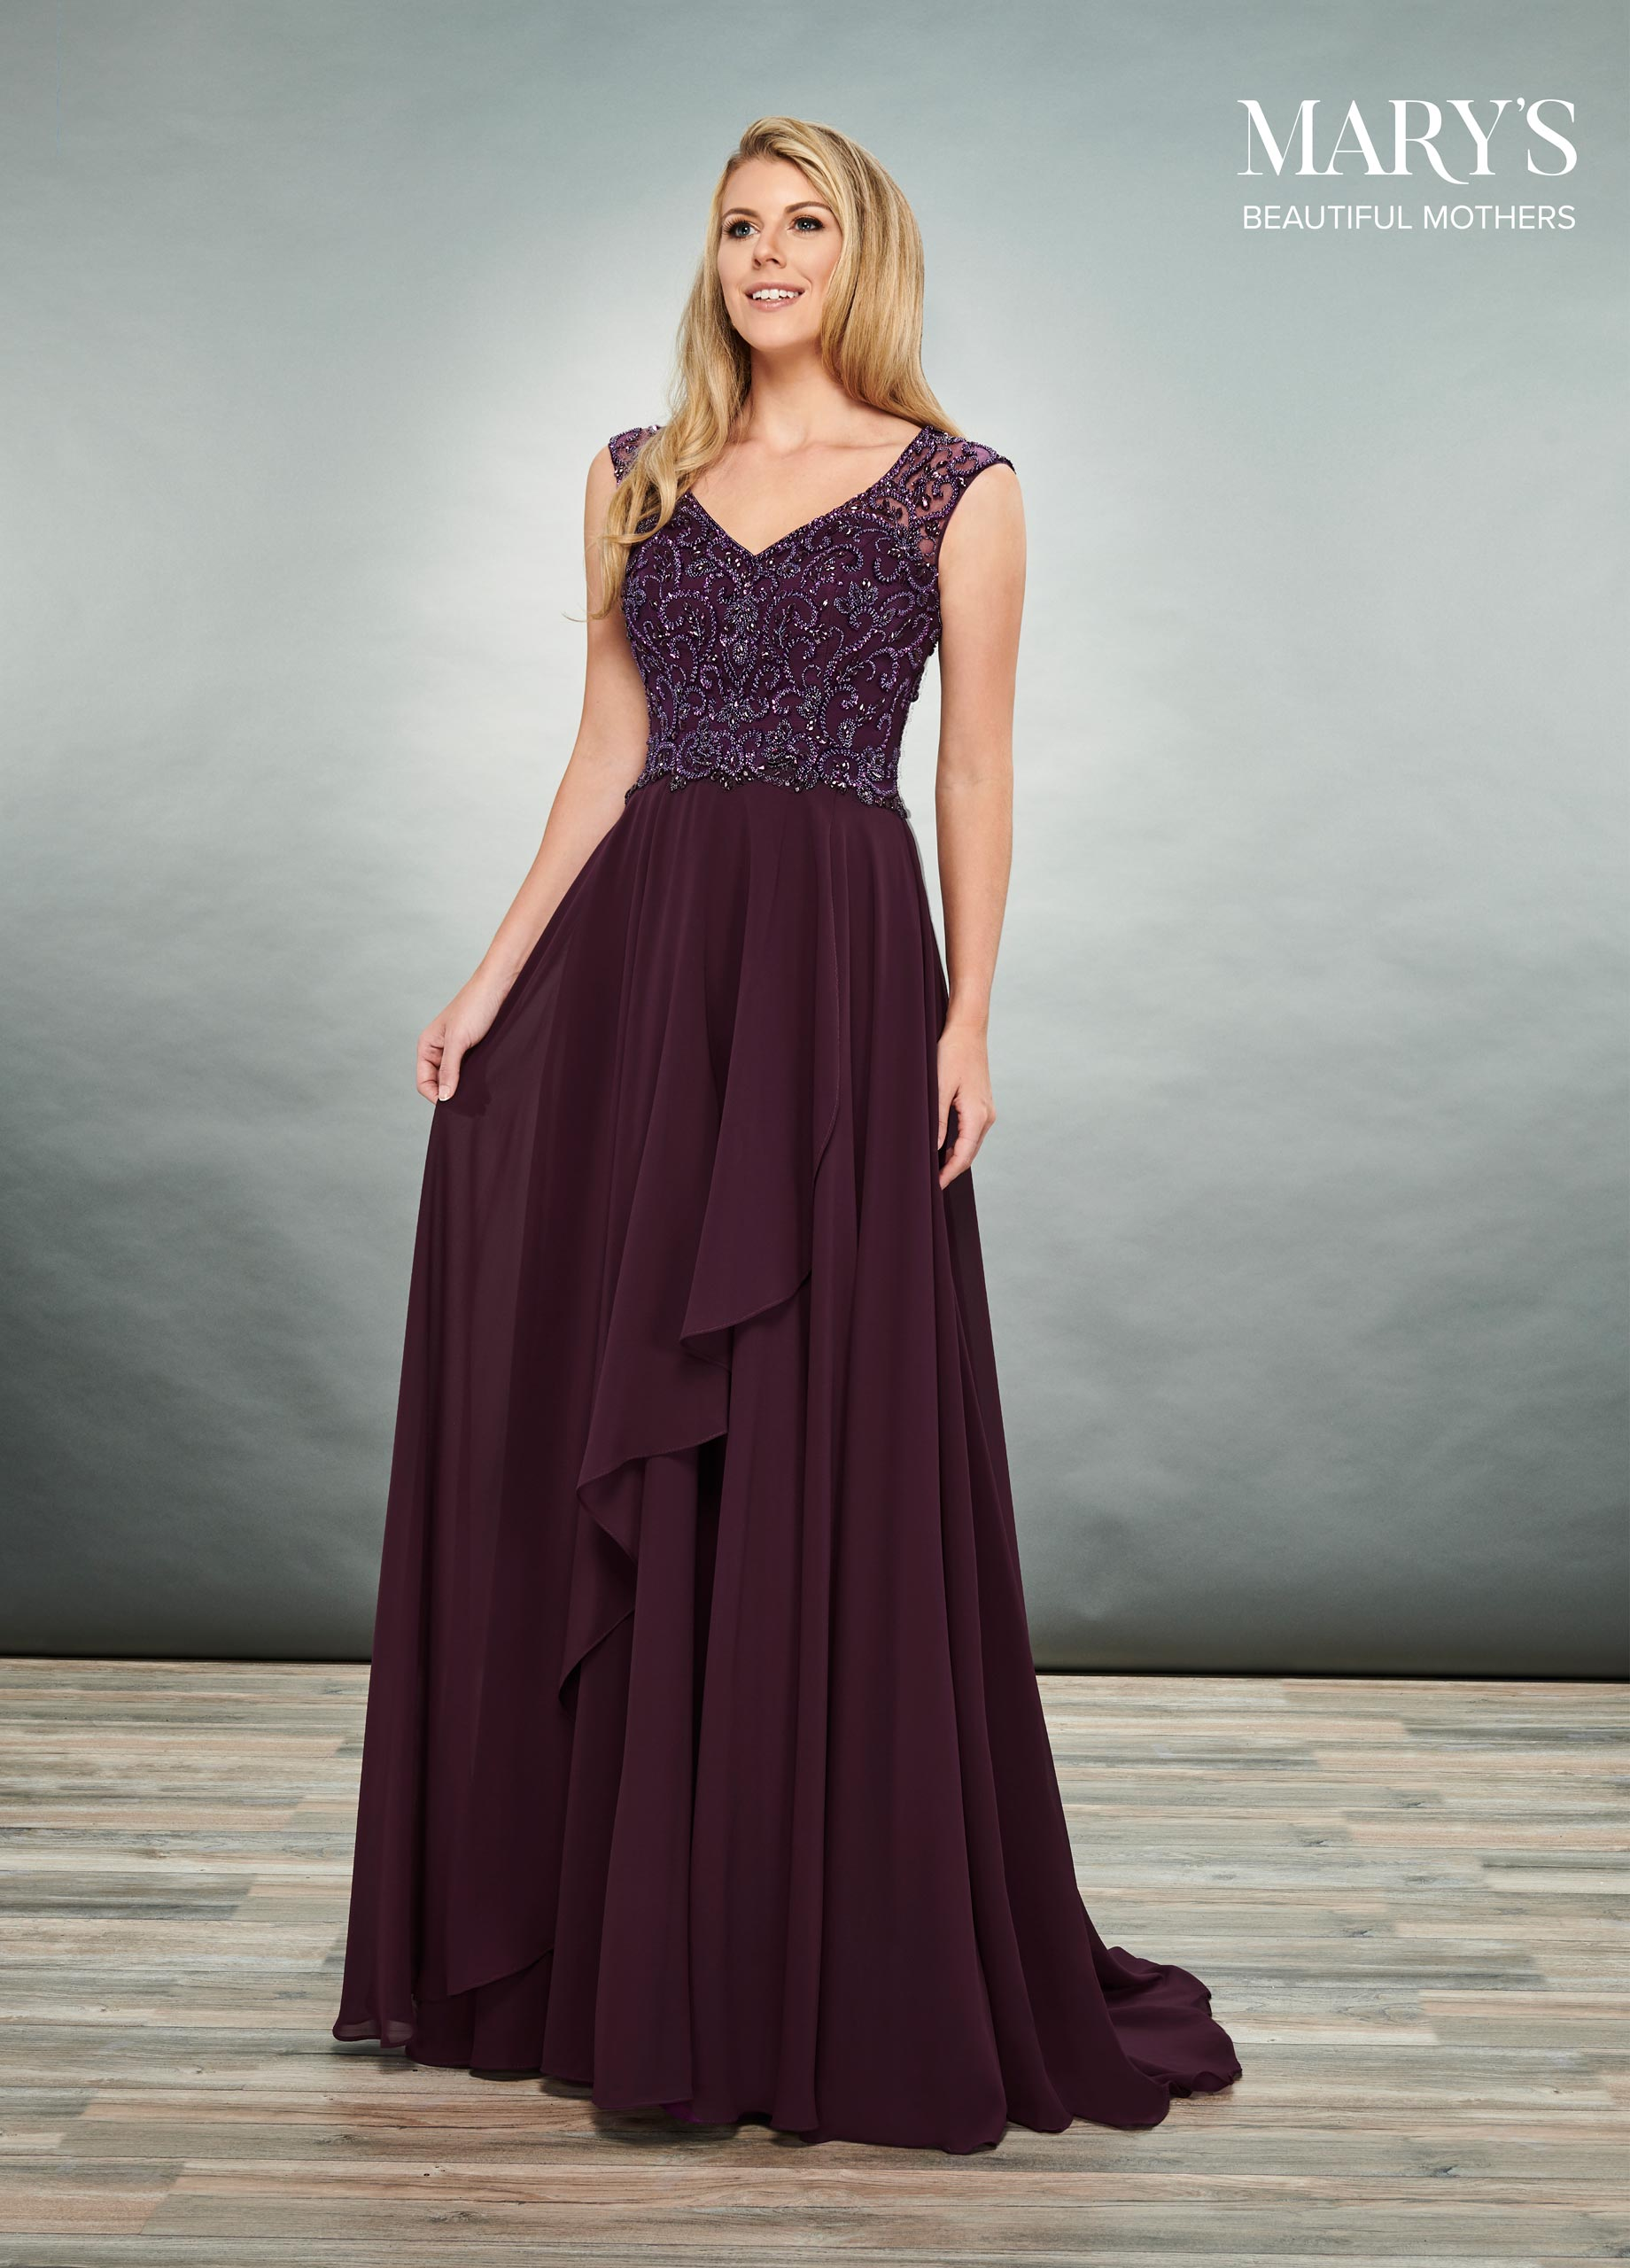 Mother Of The Bride Dresses | Beautiful Mothers | Style - MB8075